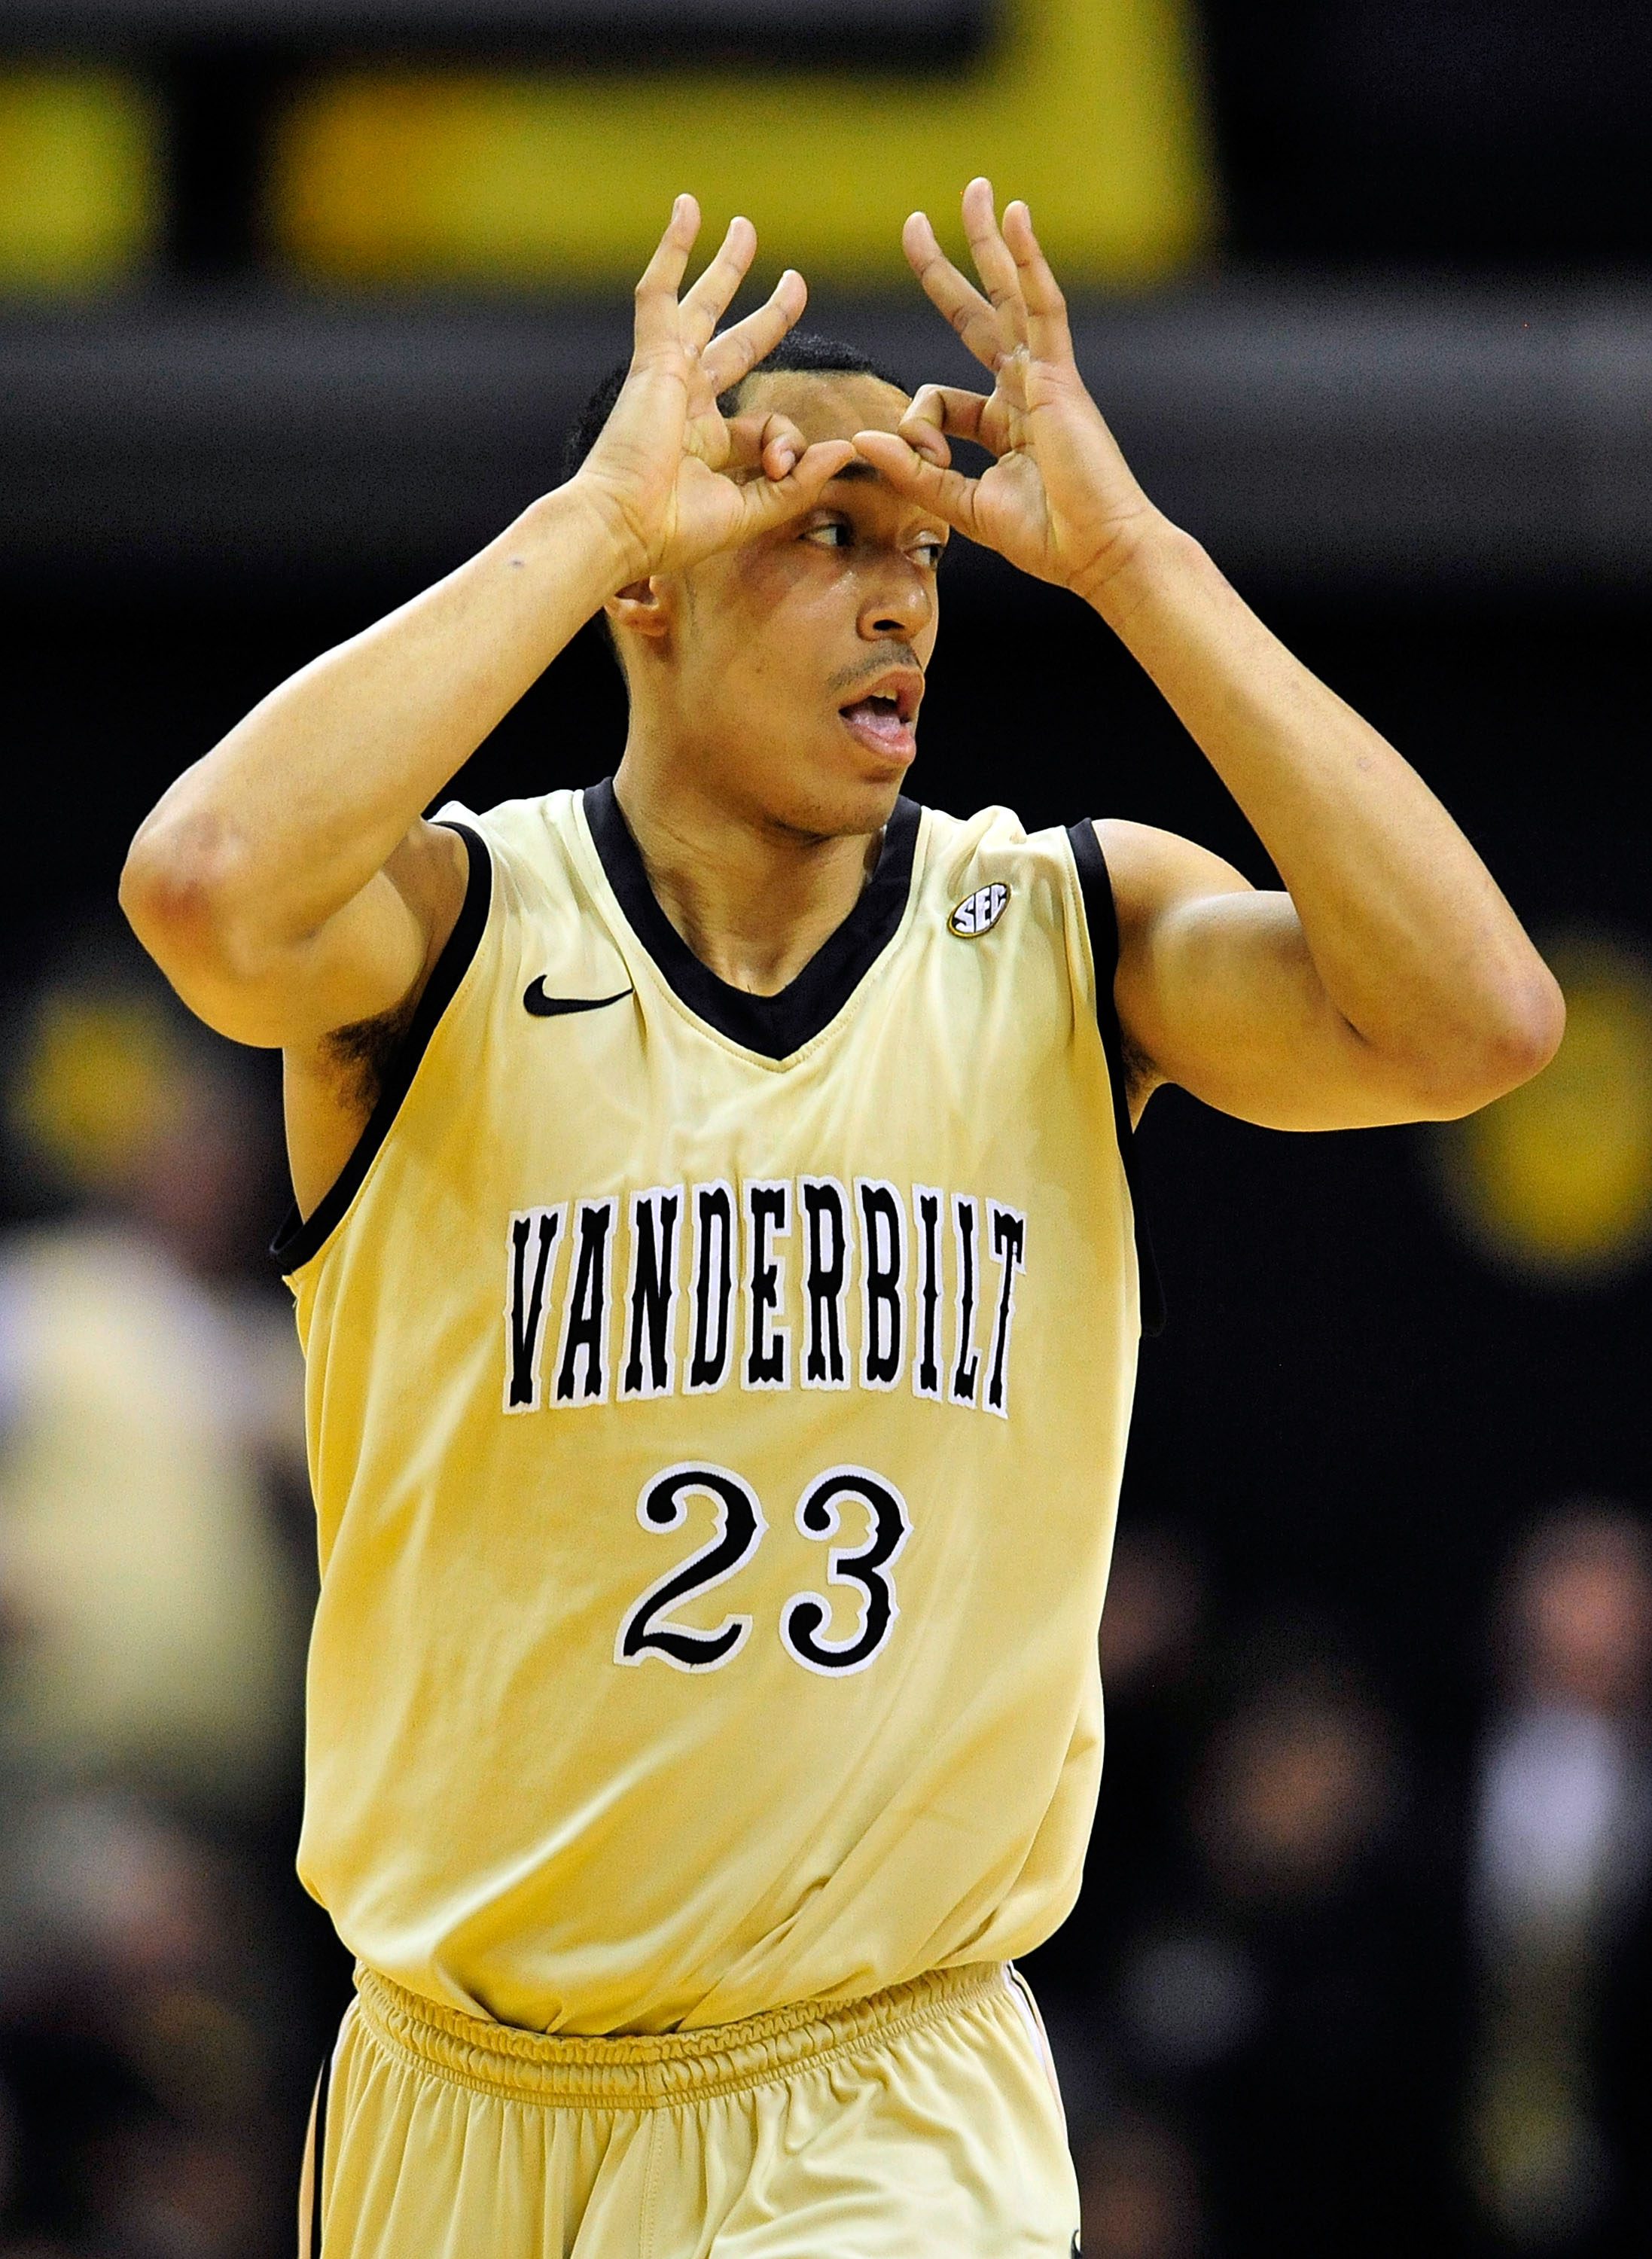 NASHVILLE, TN - FEBRUARY 12:  John Jenkins #23 of the Vanderbilt Commodores reacts after making a three-point basket against the Kentucky Wildcats at Memorial Gym on February 12, 2011 in Nashville, Tennessee.  (Photo by Grant Halverson/Getty Images)